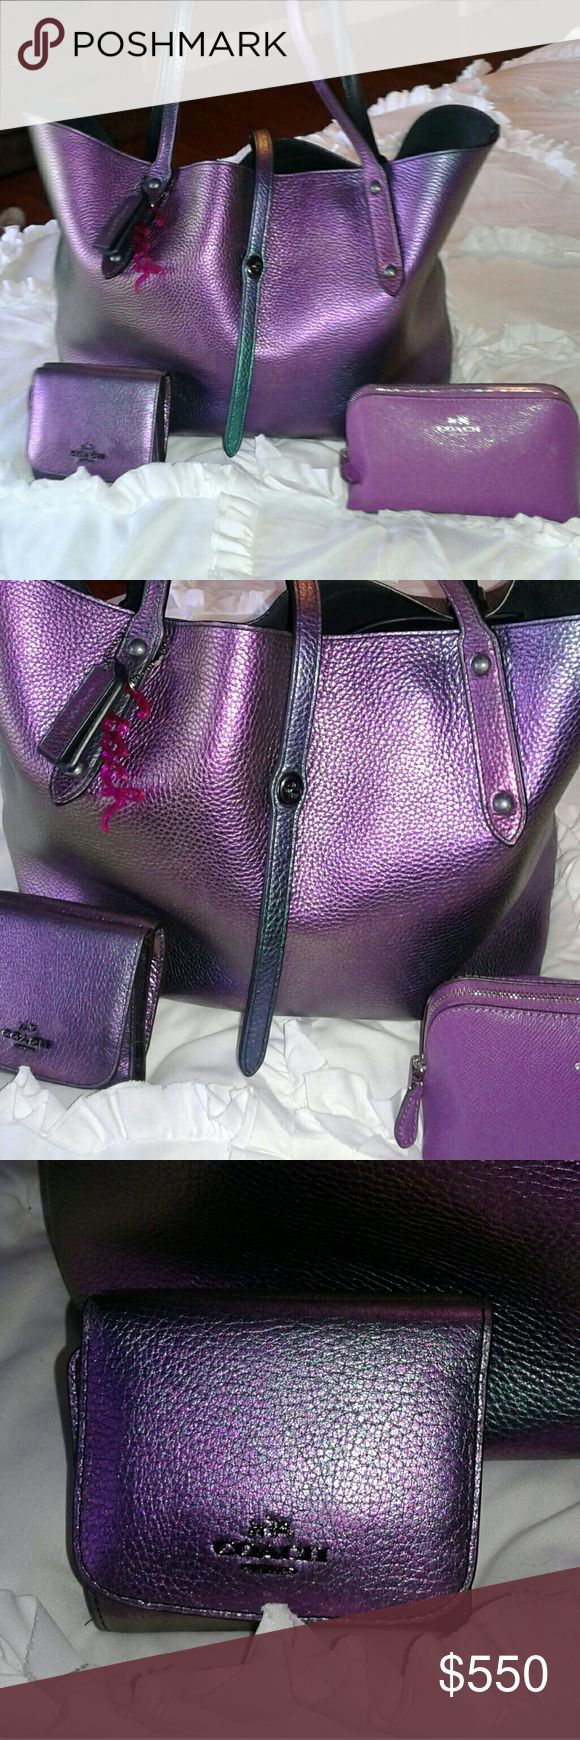 Coach HOLOGRAM IRIDESCENT Market Tote SET Absolutely stunning!  Large market tote,  gorgeous hologram rainbow color.   Tote has a few marks,  plz see extra pic listing.  Coach hologram trifold wallet.   Purple Coach cosmetic bag.   Pink hangtag Coach Bags